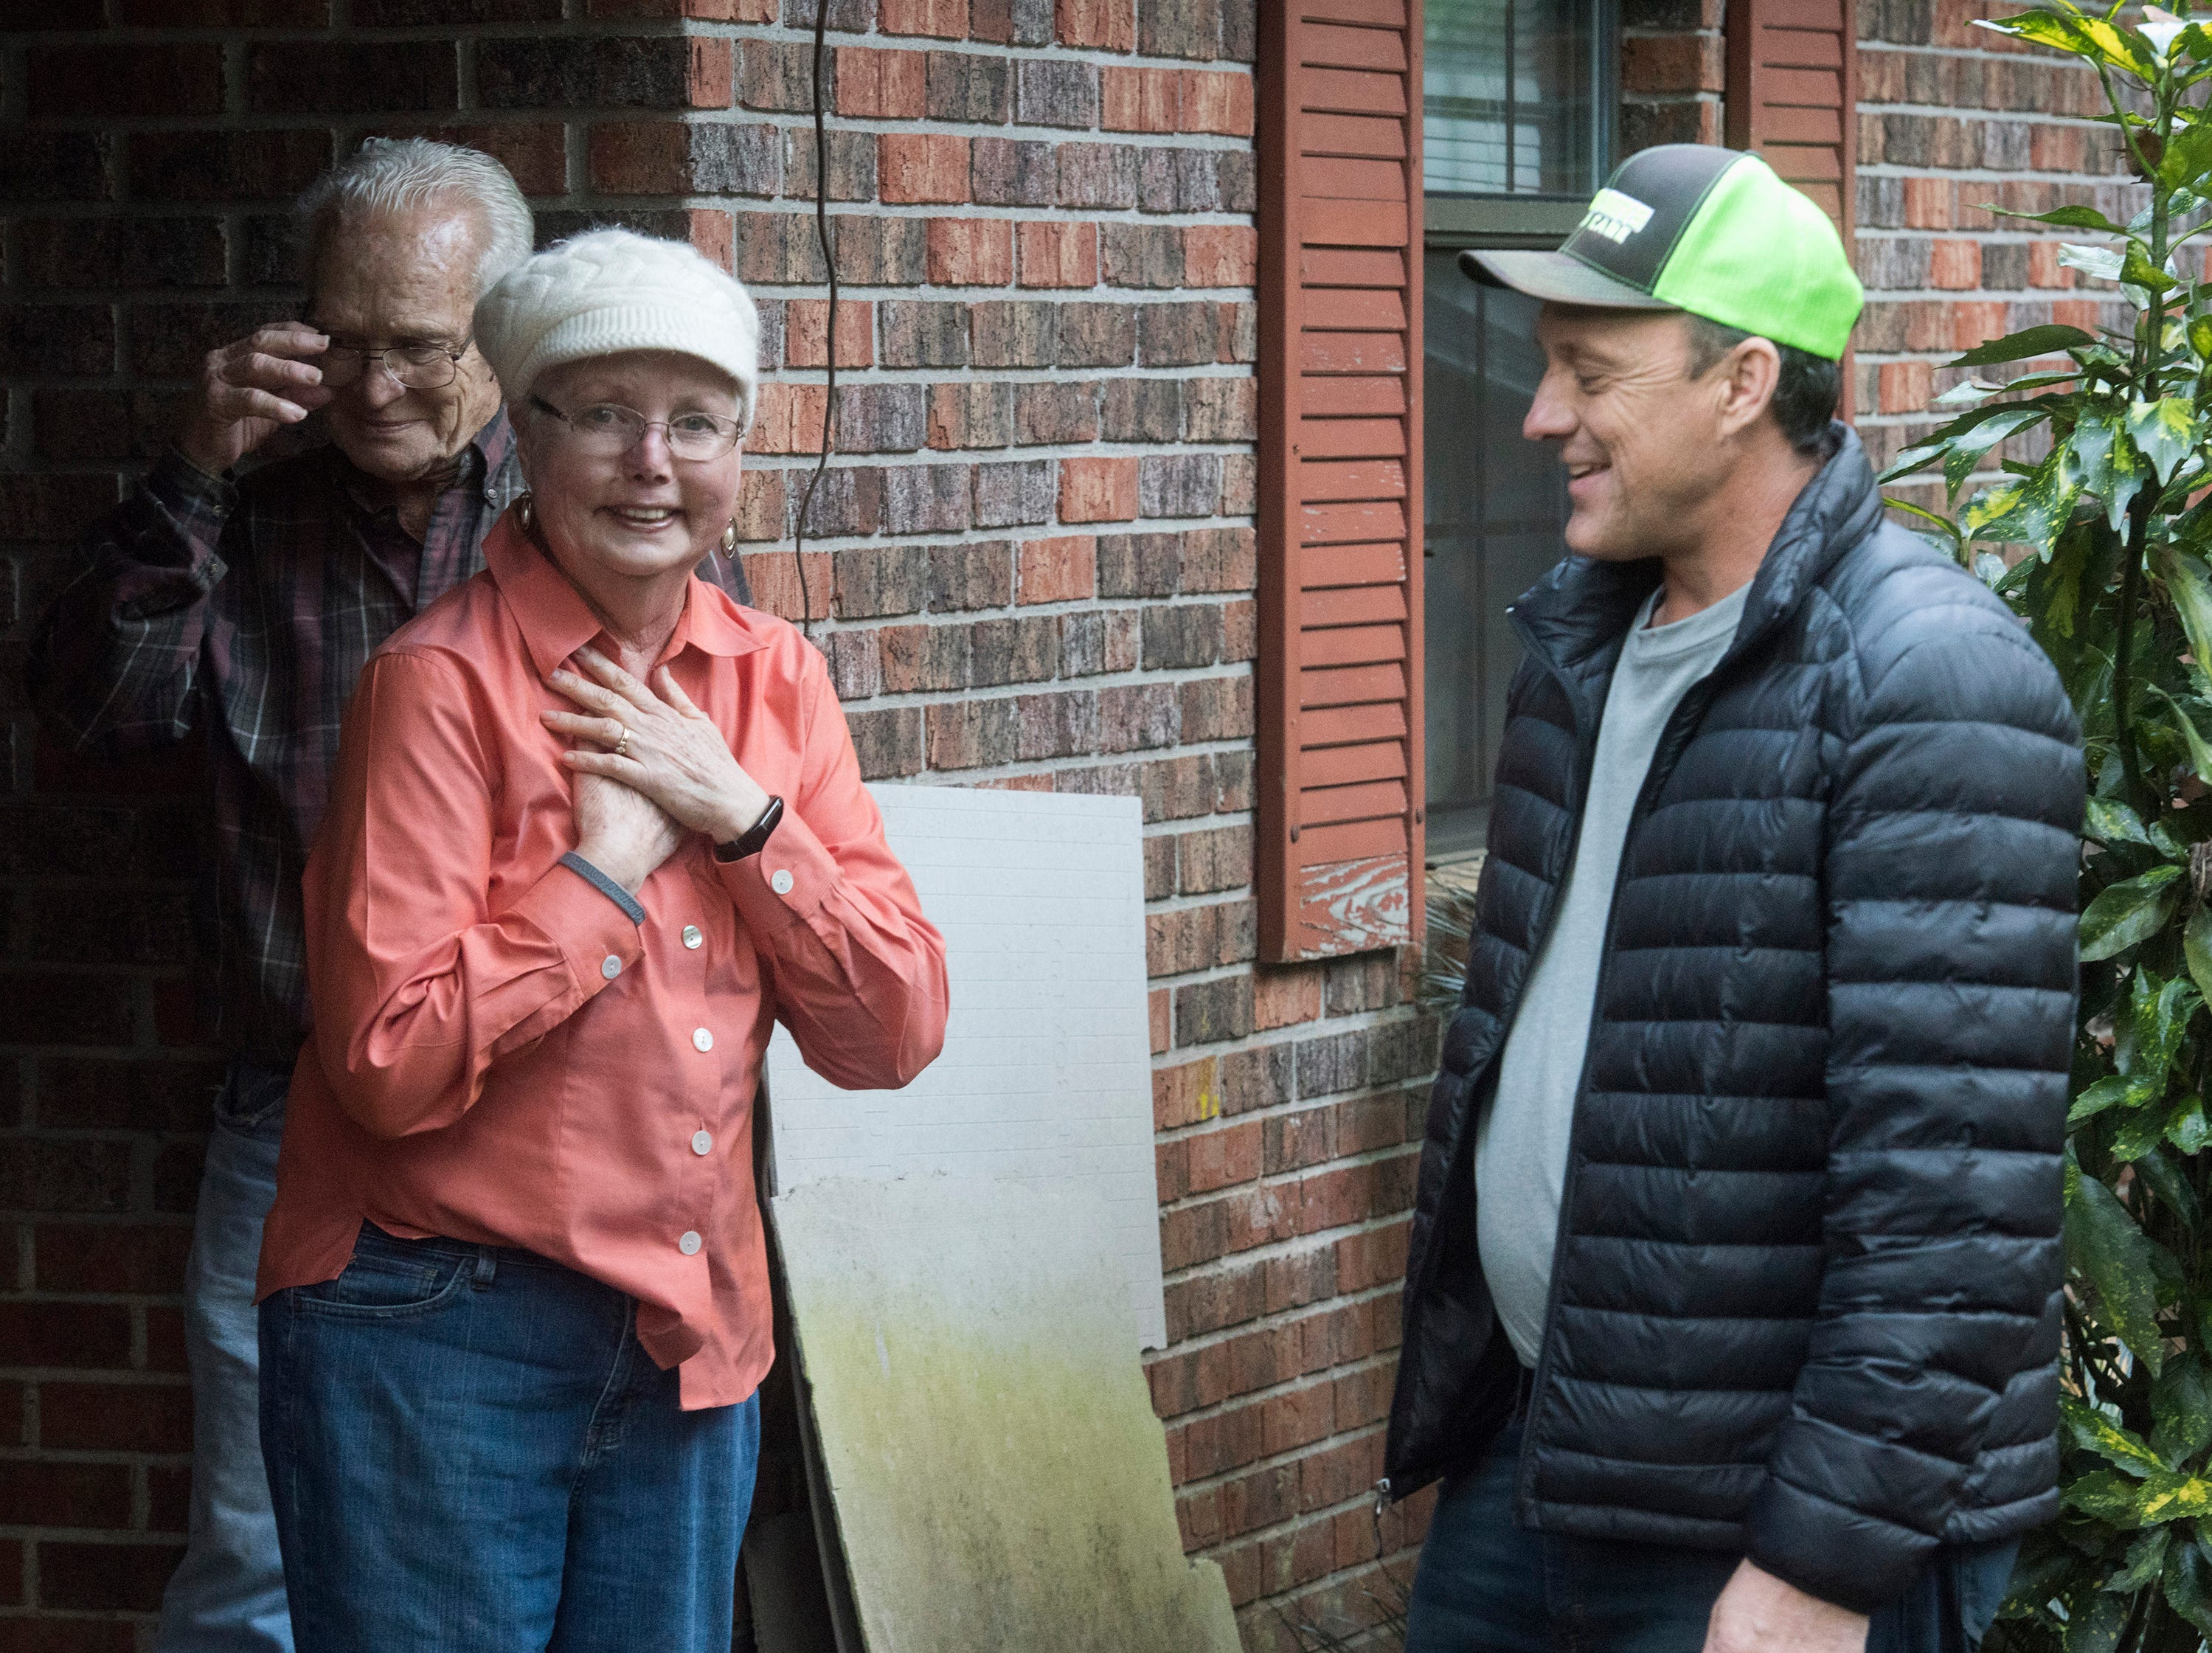 East Milton resident, Phyllis and Jim Blazier, are overcome with emotion after a surprise delivery of a motorized chair to their home on Friday, Jan. 4, 2019, while Rick Beech, the owner of Beech Boys Lawn Care, looks on. Beech delivered the gift after learning of the couple's need via Facebook.